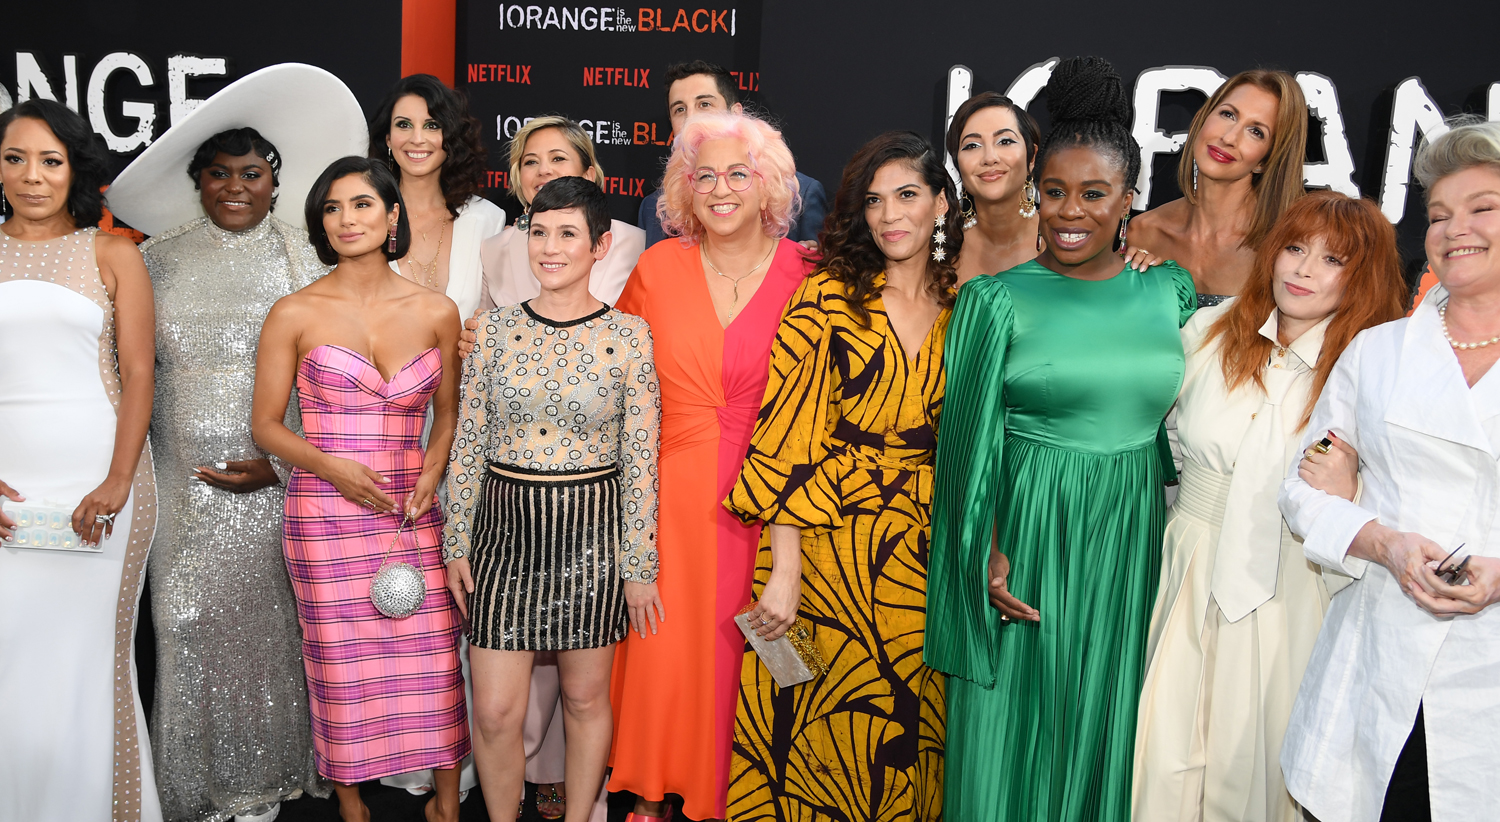 See All the 'Orange Is the New Black' Cast at the Final Season